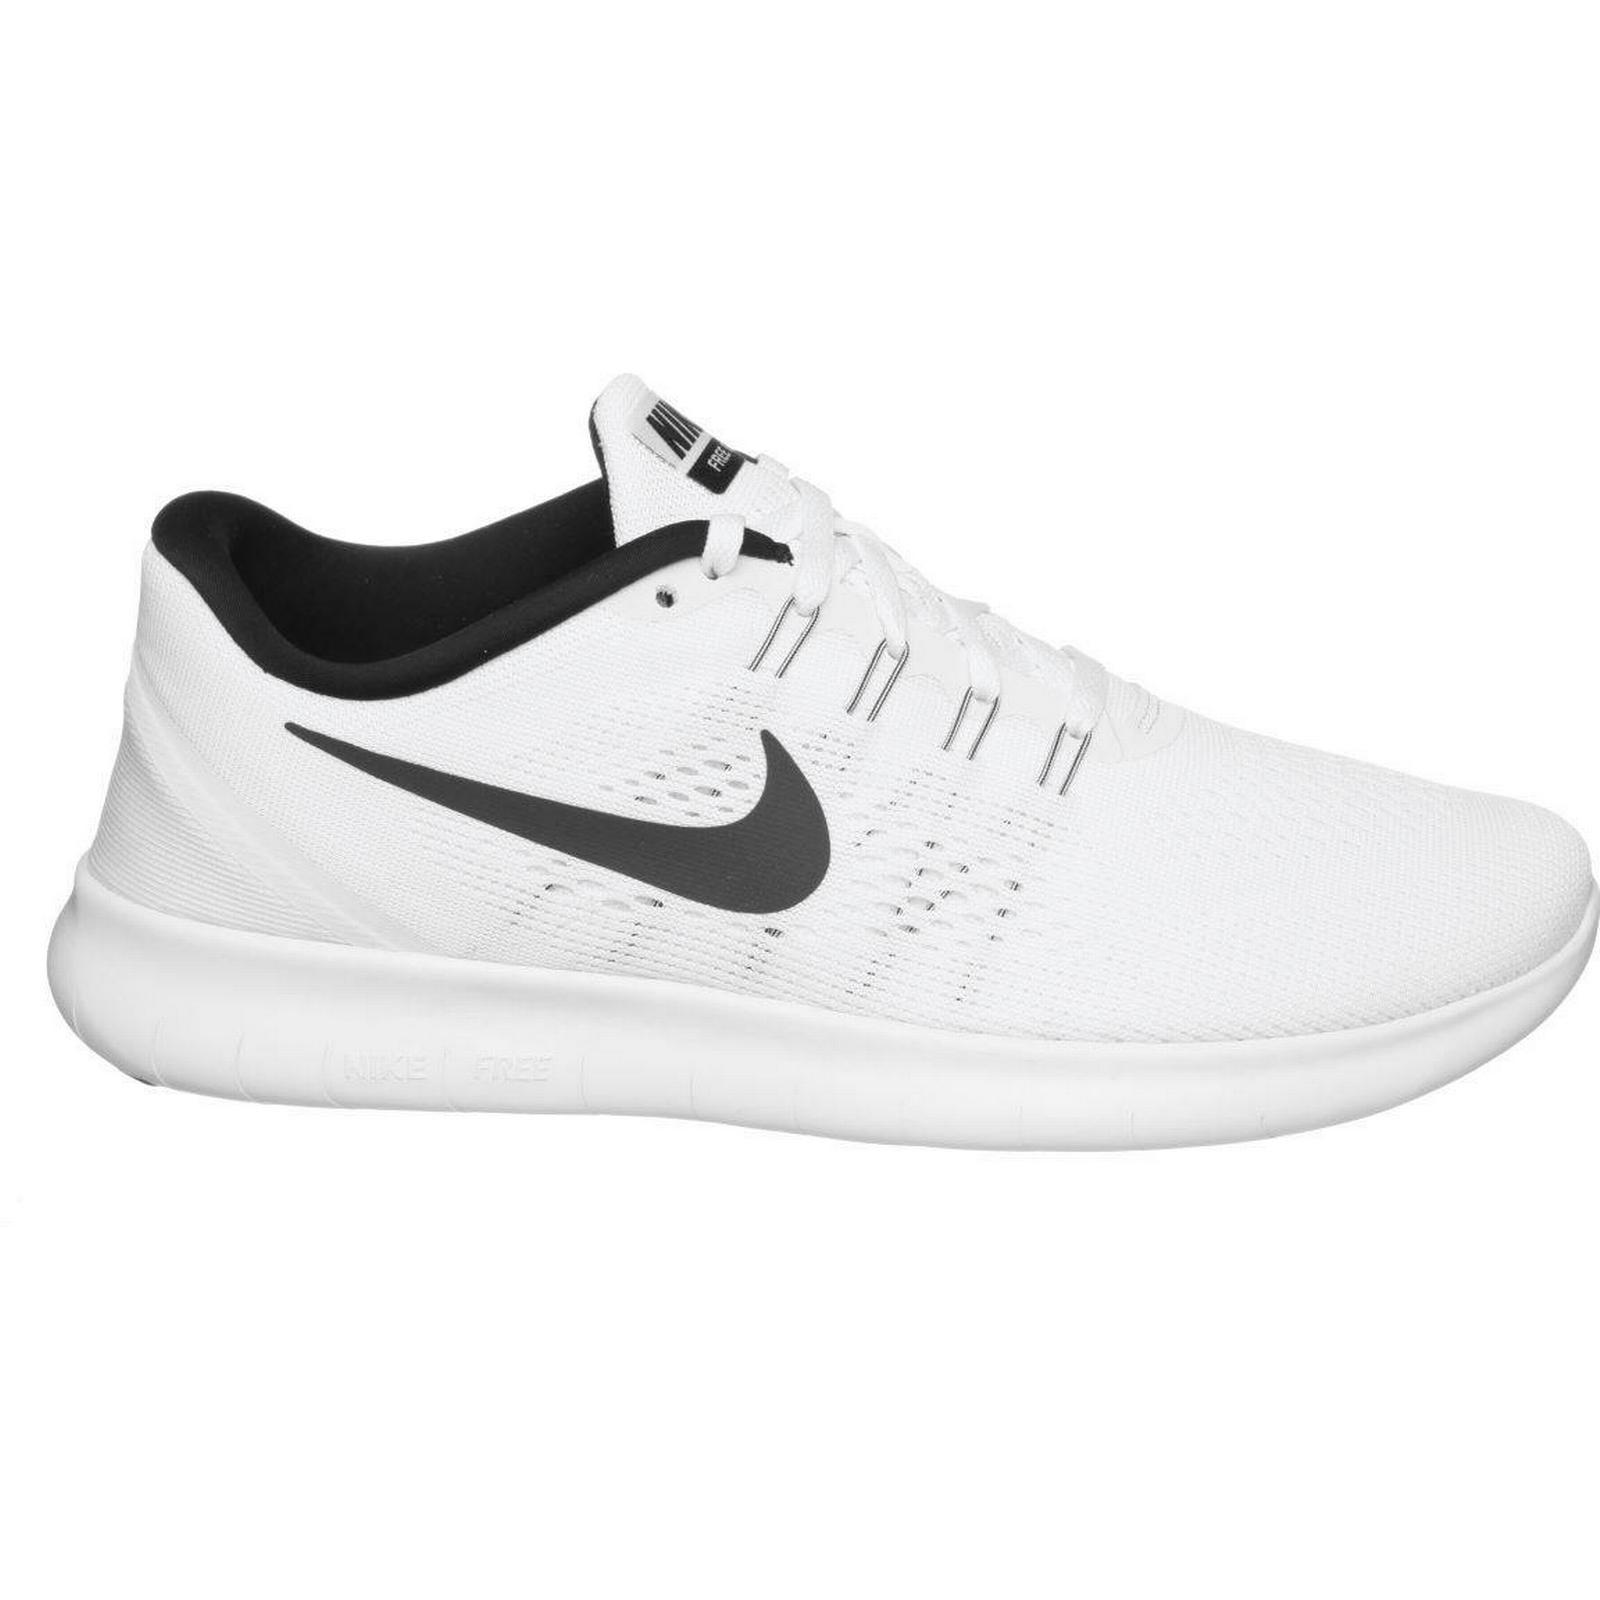 Wiggle Online Running Cycle Shop Nike Free RN Running Online Shoes Running Shoes a172bd